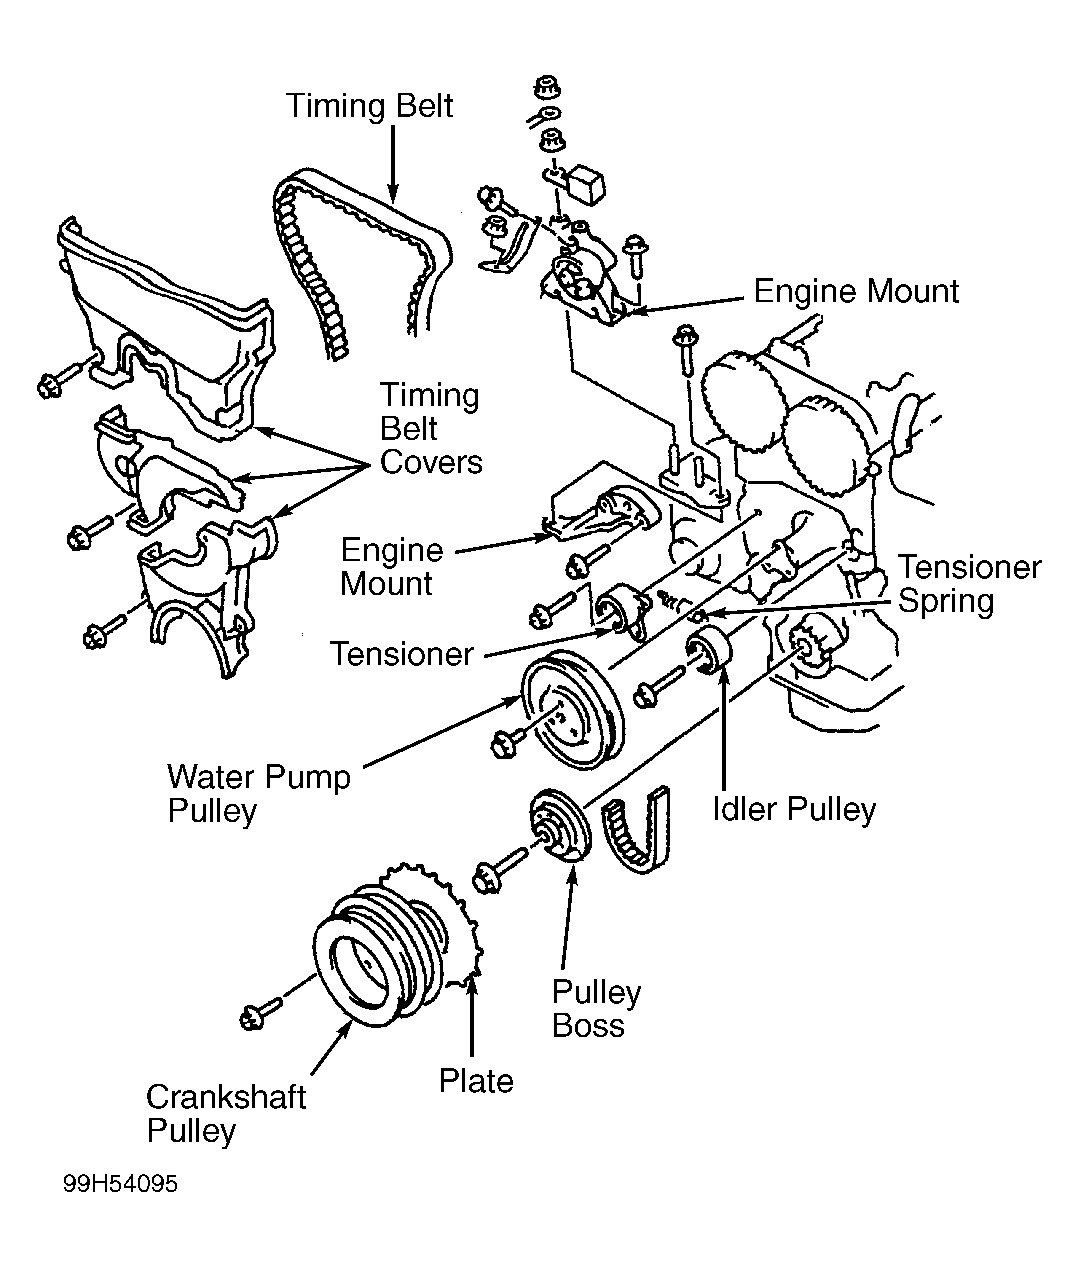 Mazdaprotegeenginediagram Fig 7 Engine Mount Locations